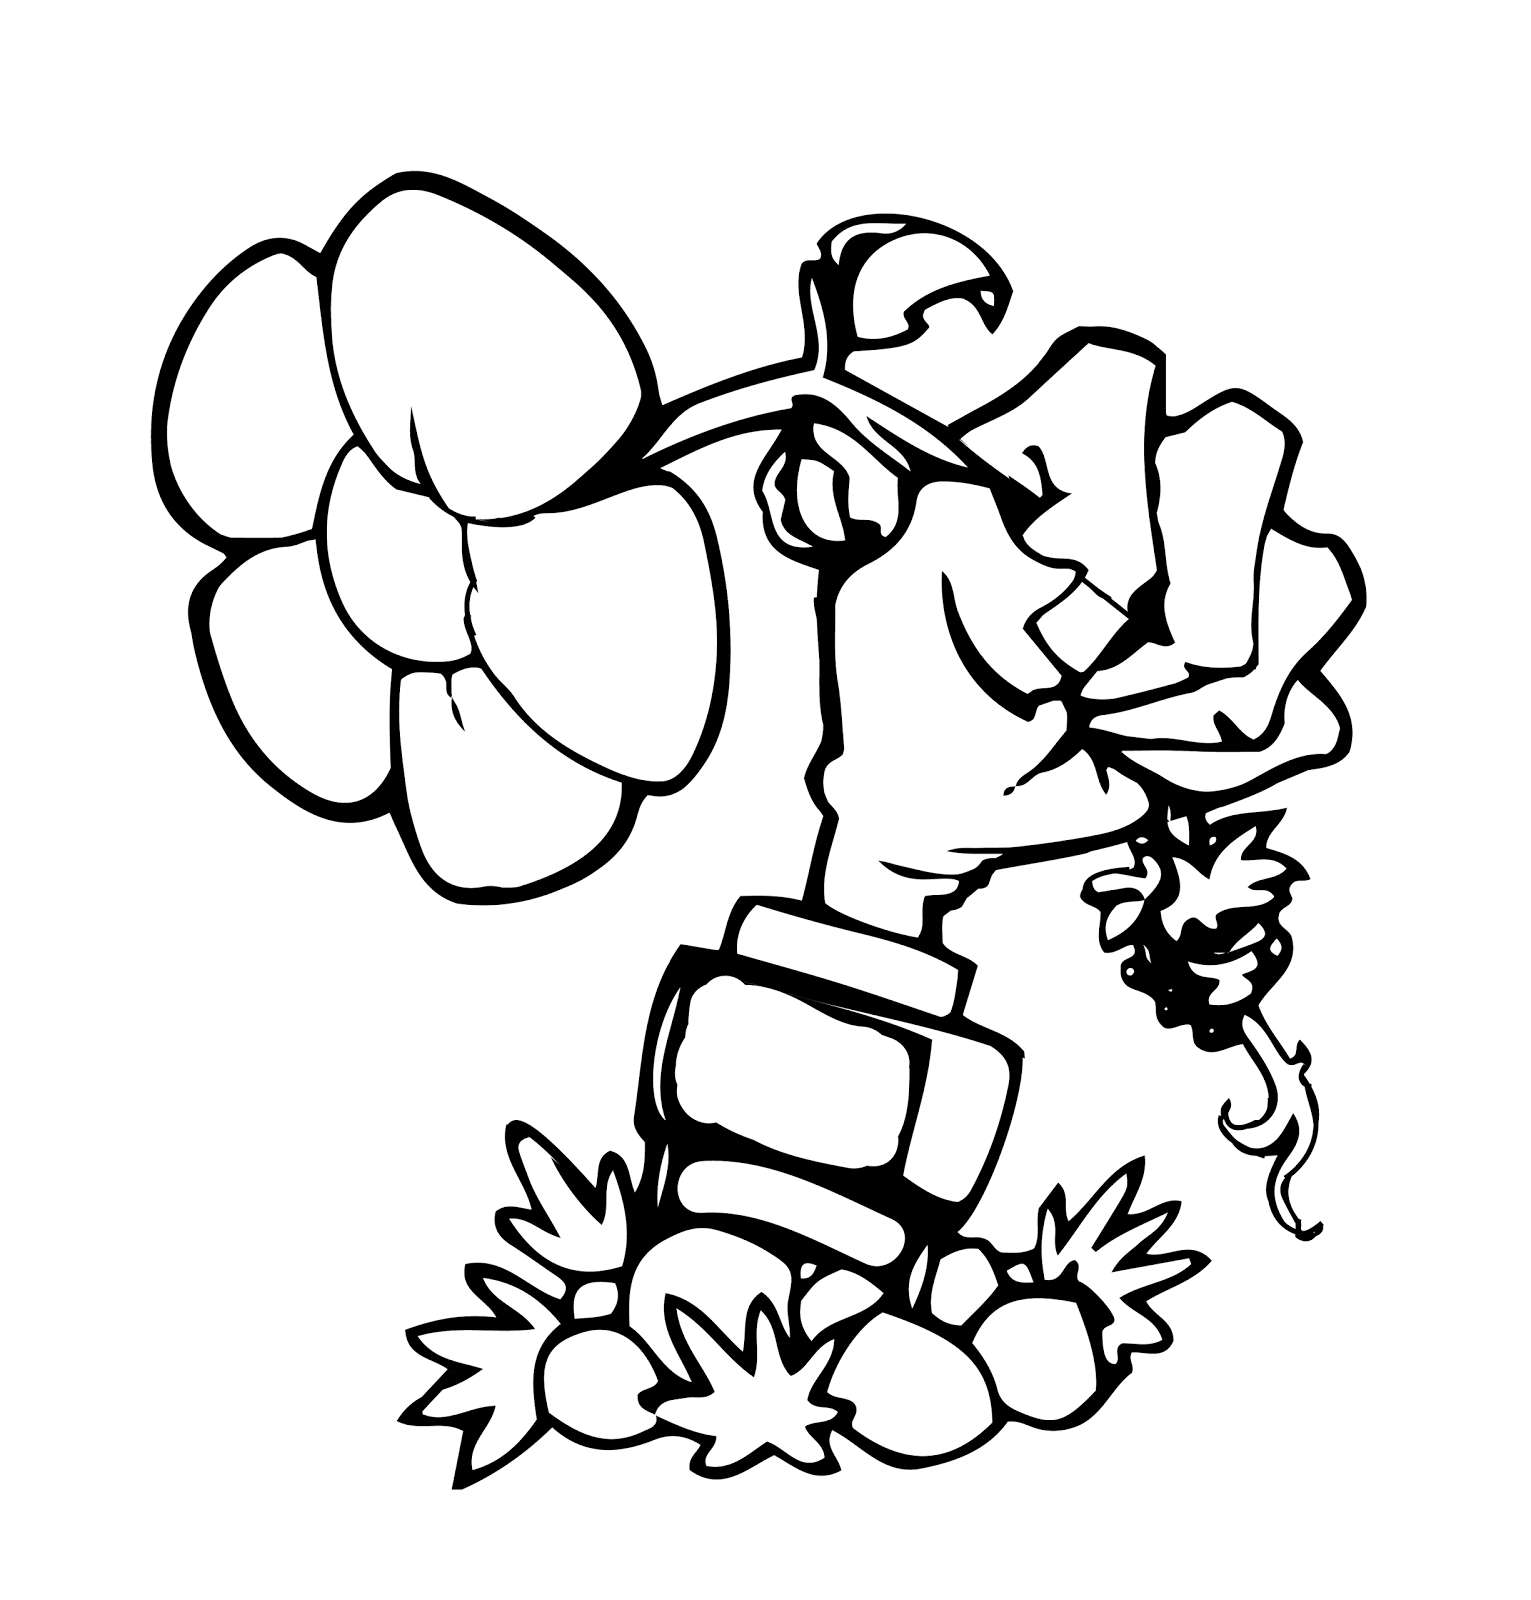 pea sign coloring pages - photo#12